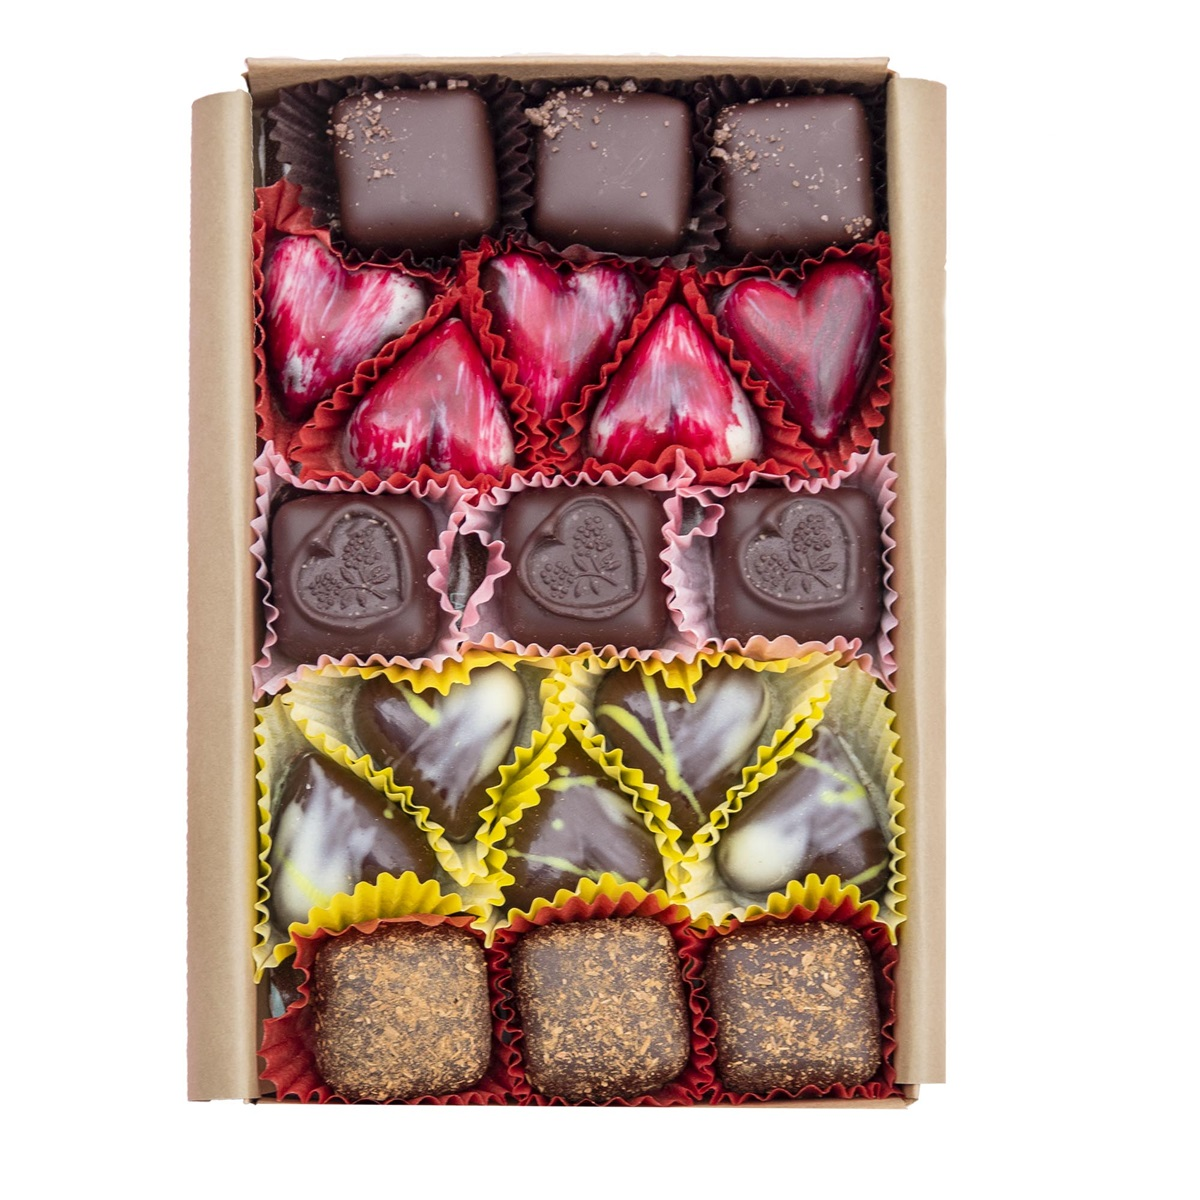 Guide to the Best Dairy-Free Valentine Chocolate: Over 20 Chocolatiers with Vegan, Gluten-Free, Food Allergy-Friendly, Organic, Fair Trade and more! (Lagusta's Luscious pictured)